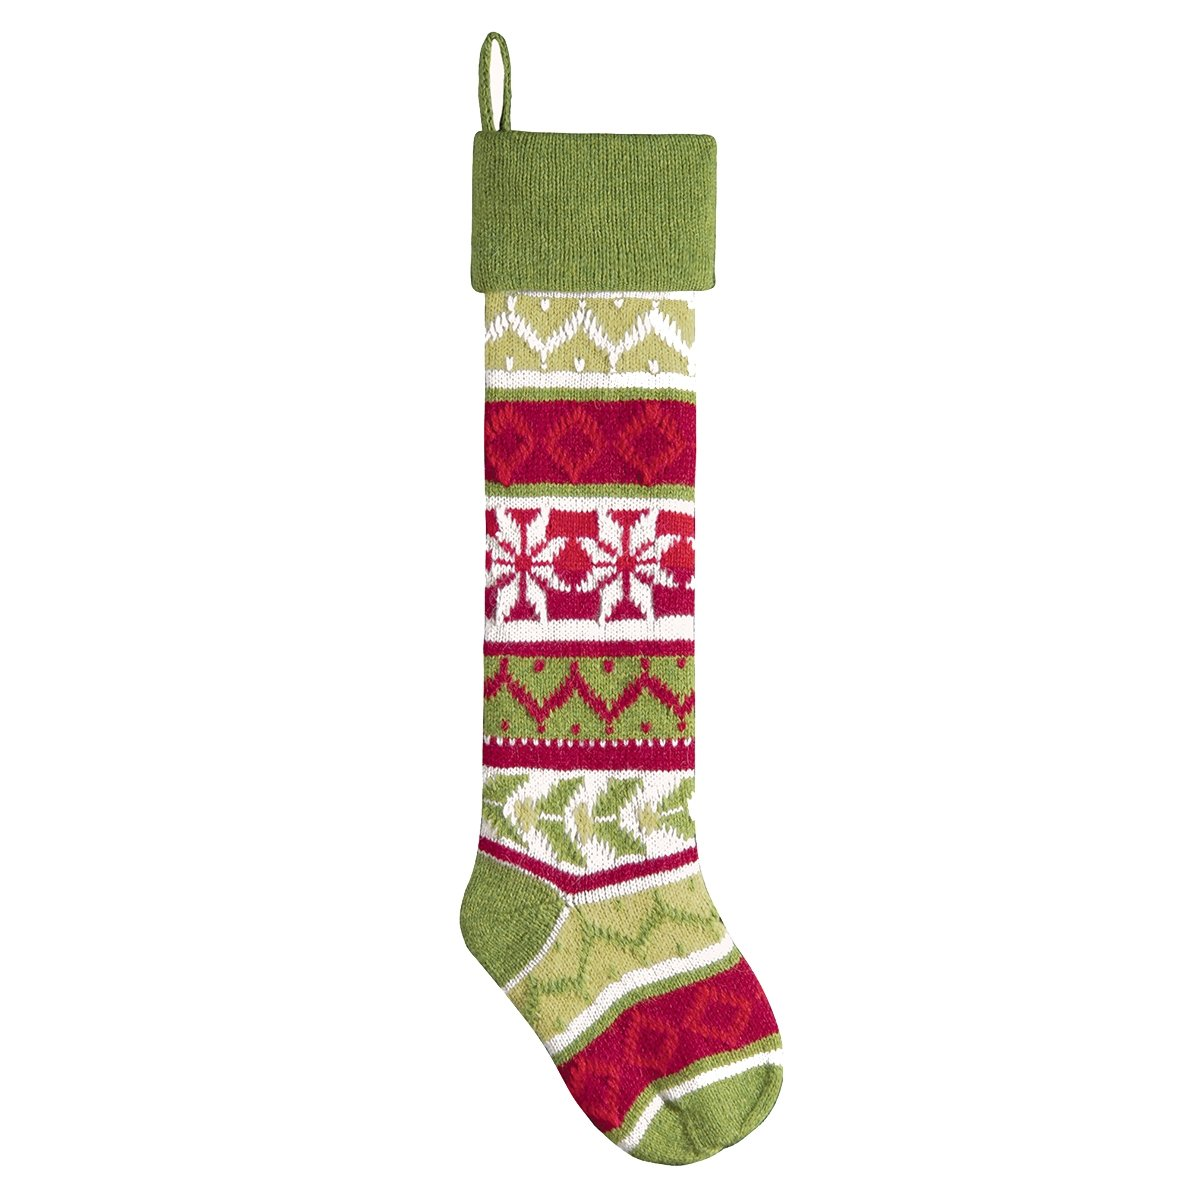 6.5'' x 27.5'' Handcrafted Oversized Green Knit Stocking